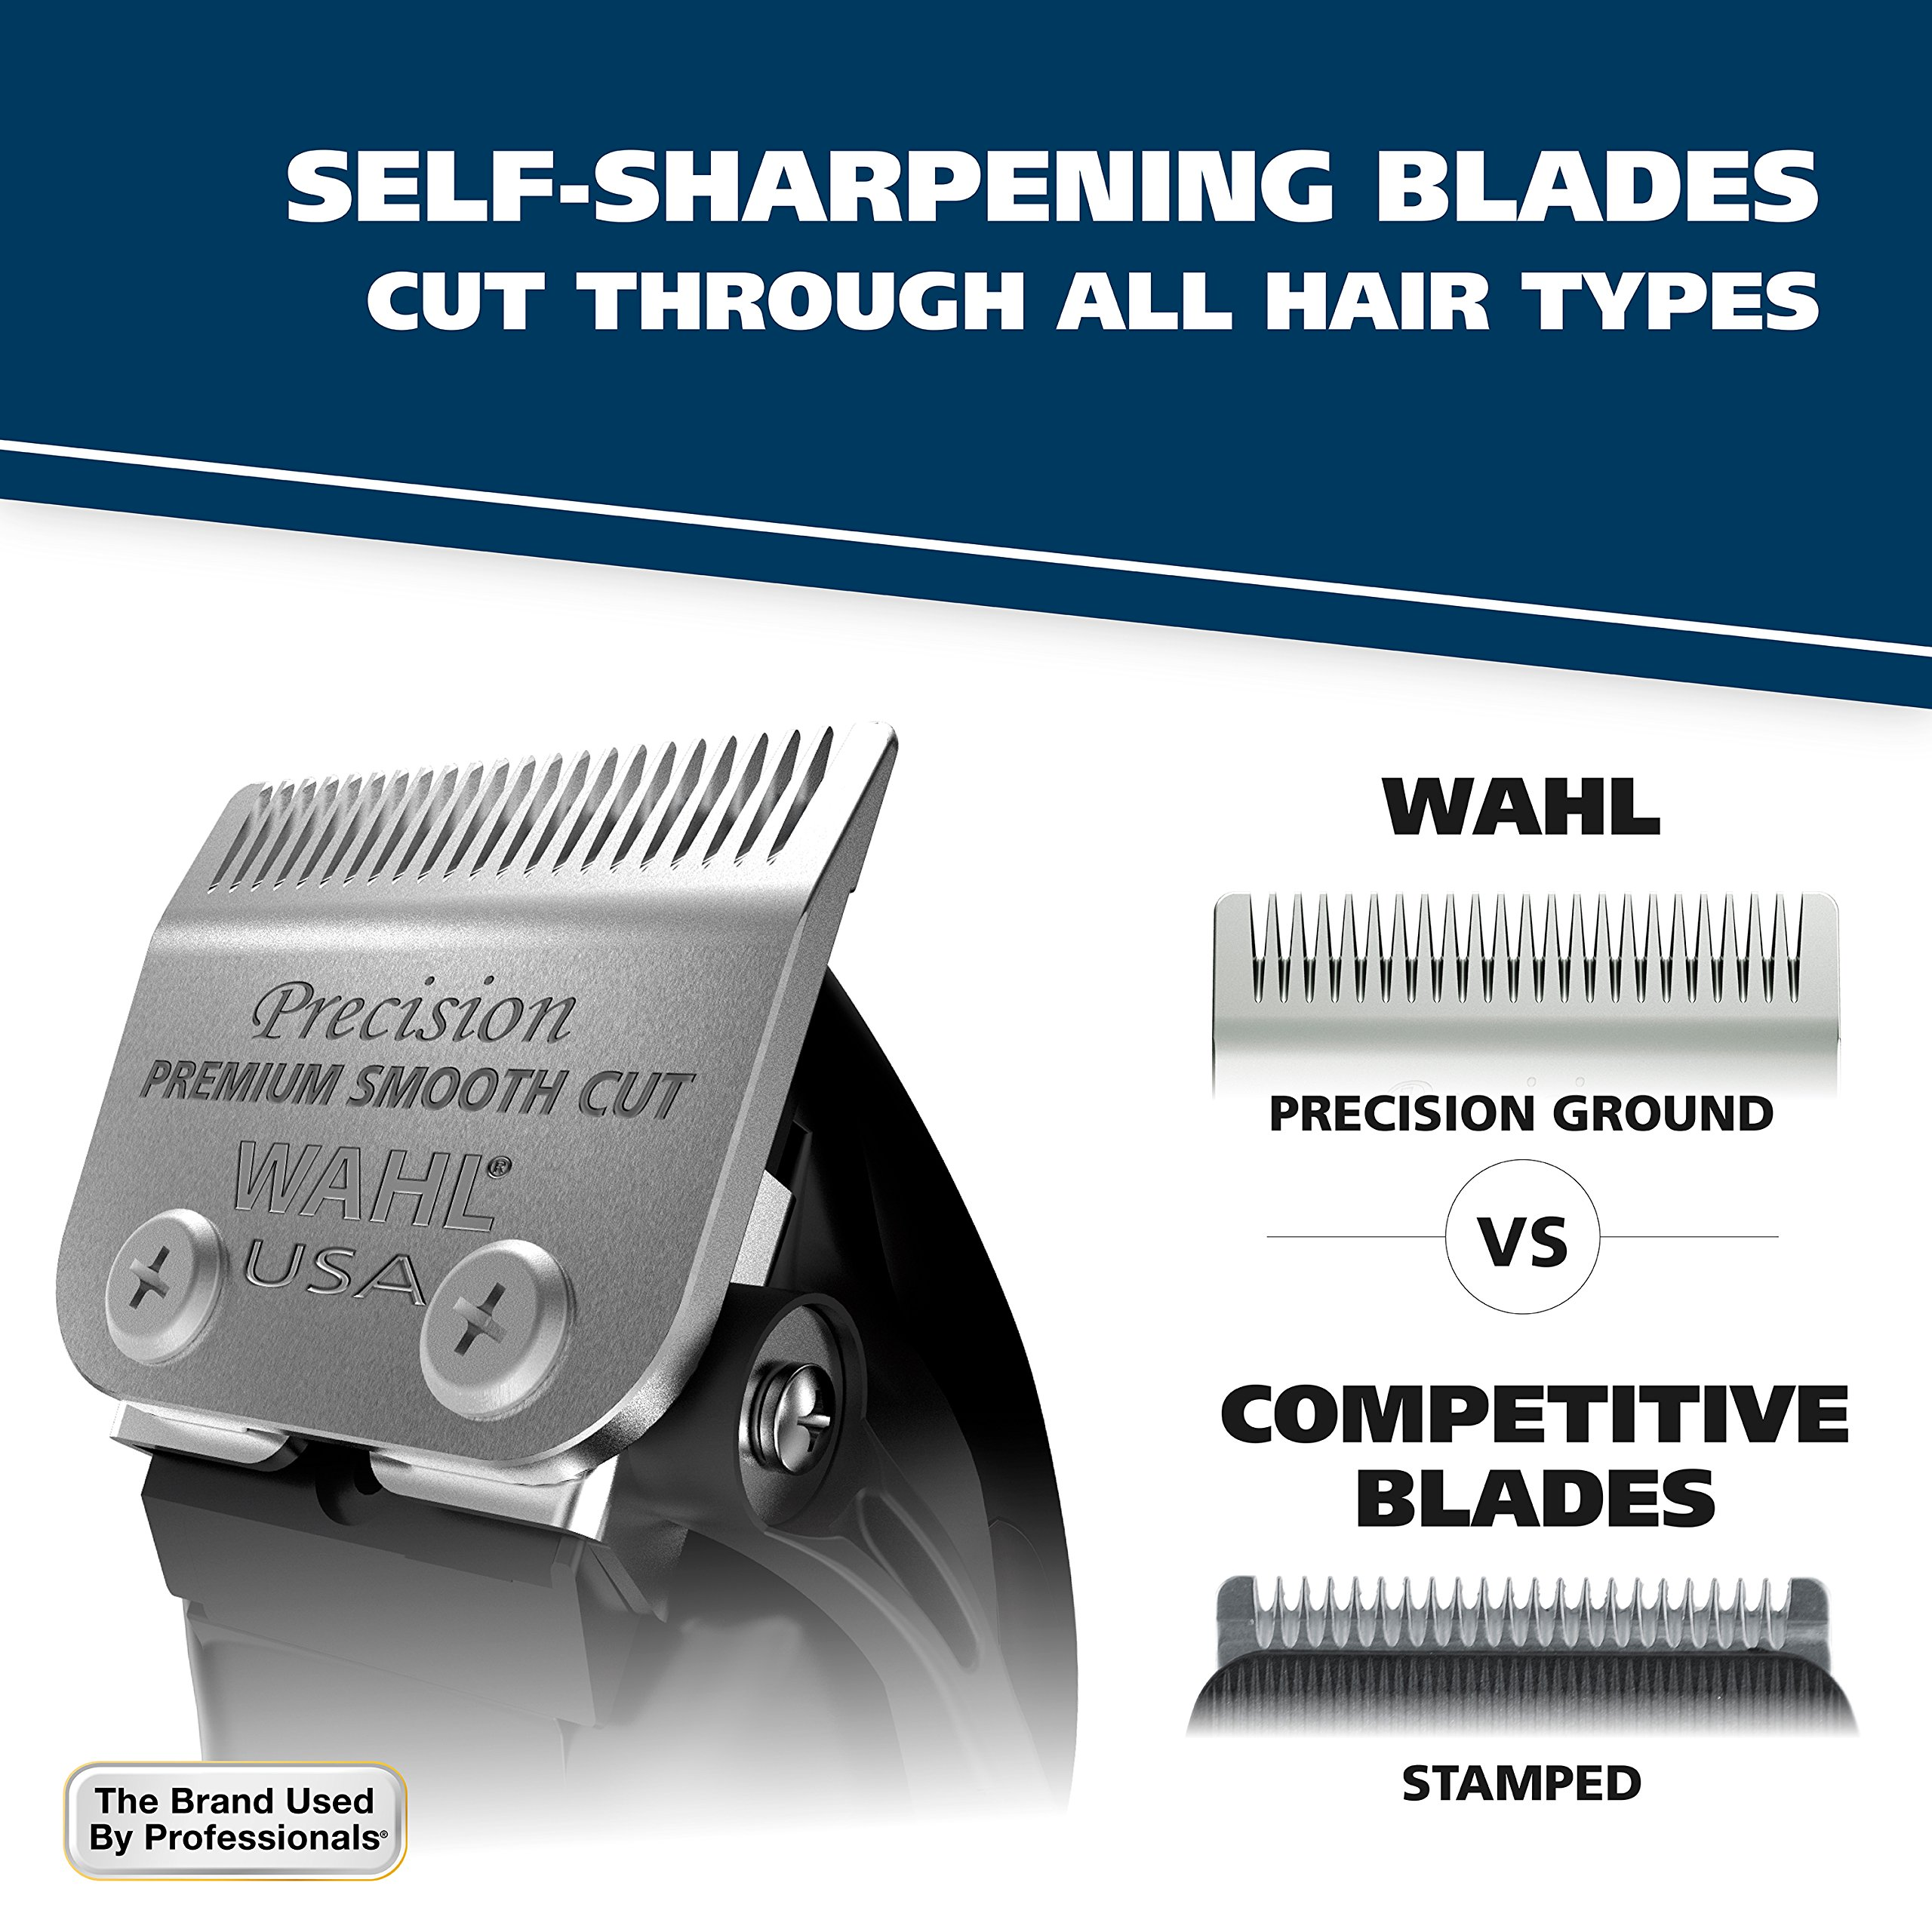 Wahl Clipper Self-Cut Haircutting Kit 79467 Compact Trimming and Personal Grooming Kit by WAHL (Image #6)